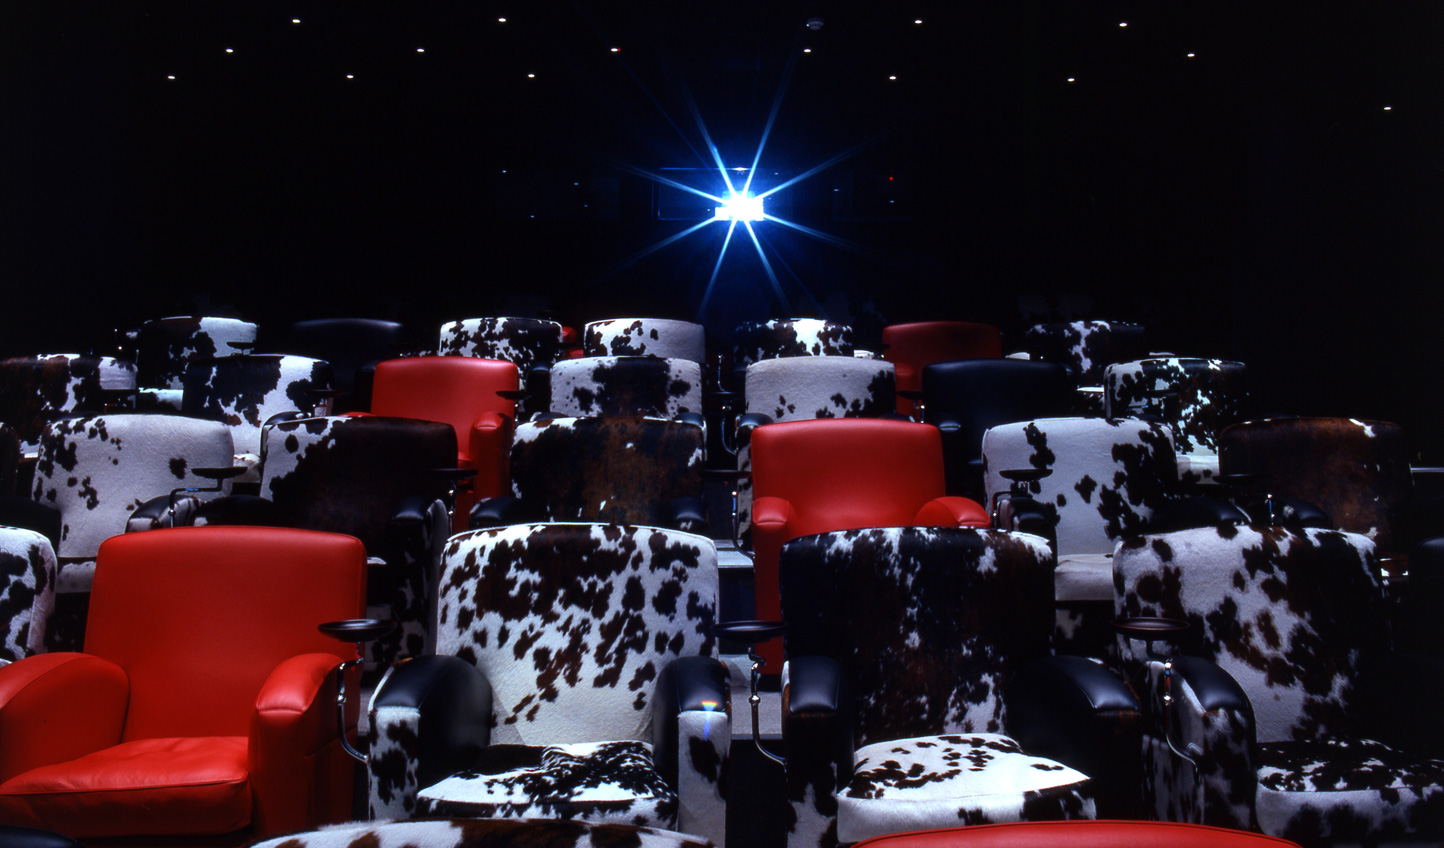 Why not catch a movie after dinner in the Screening Room?